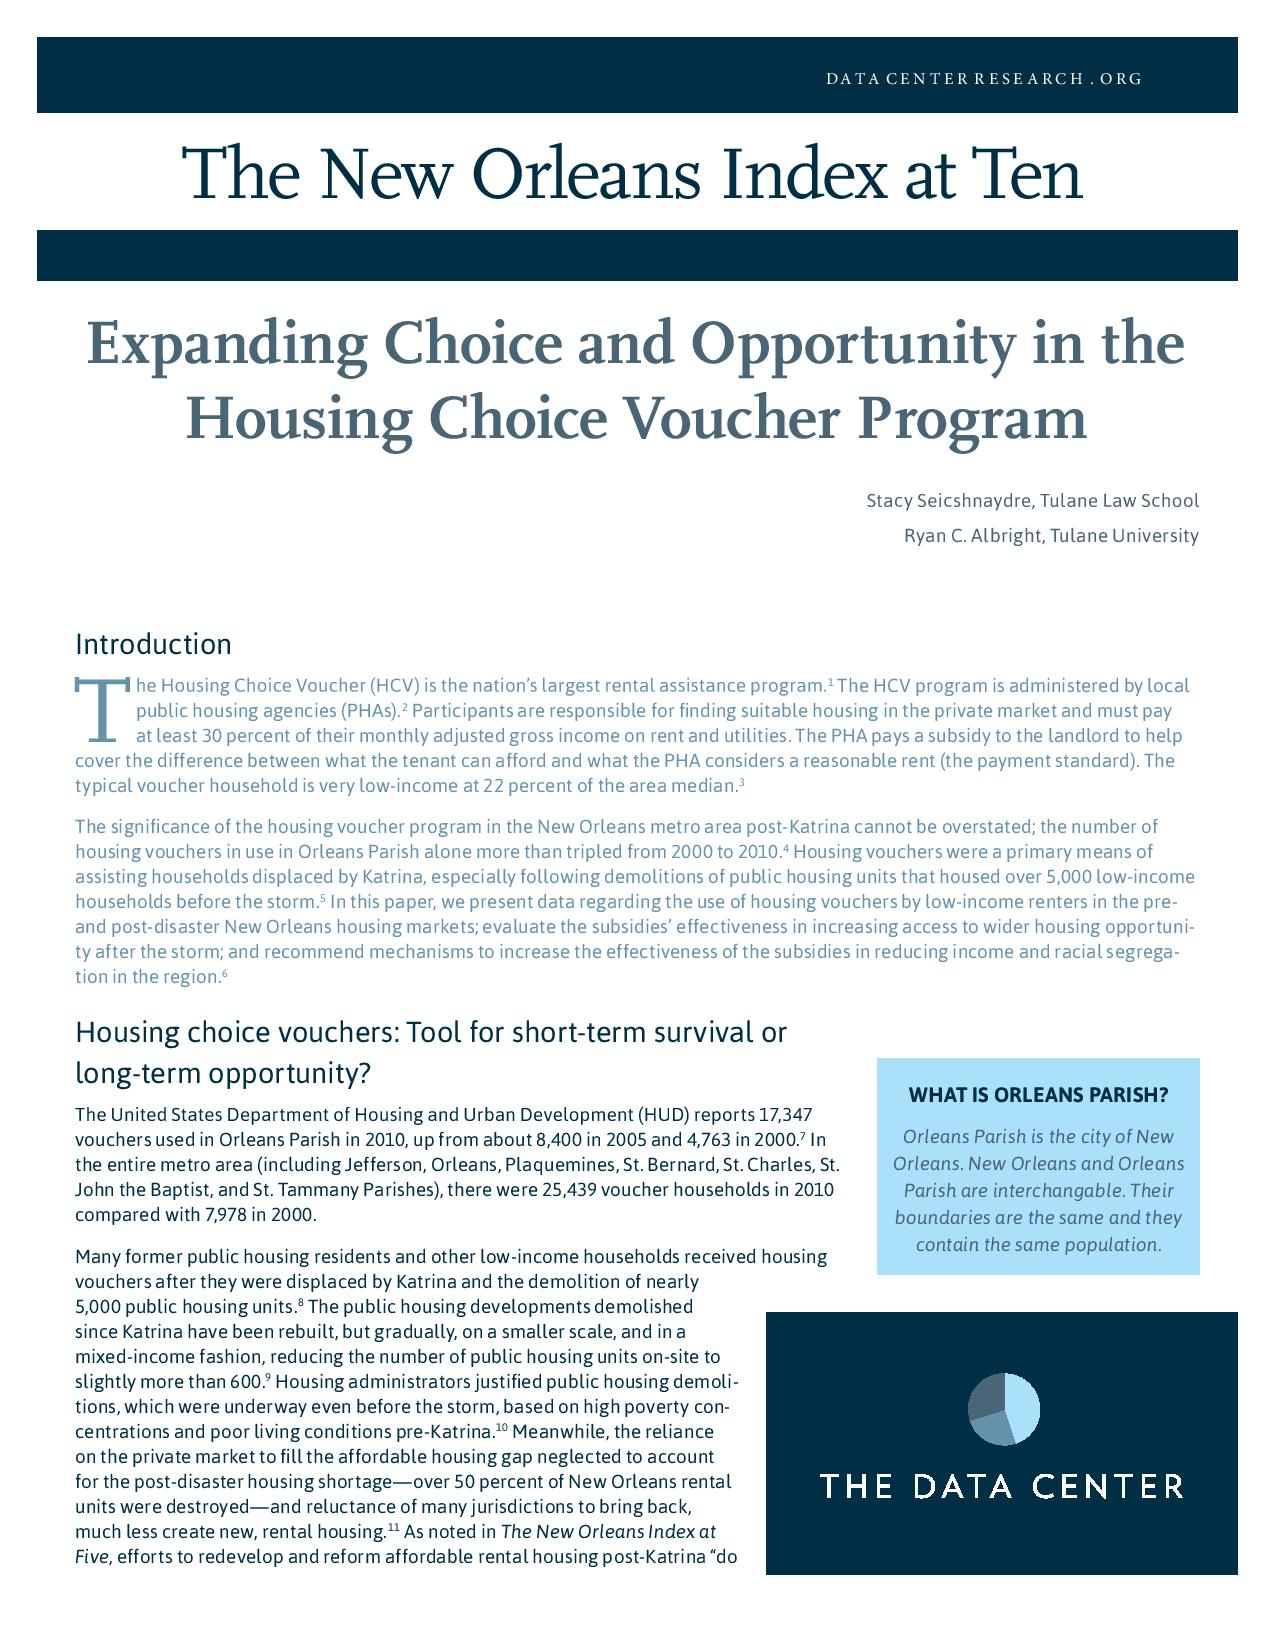 Expanding Choice and Opportunity in the Housing Choice Voucher Program